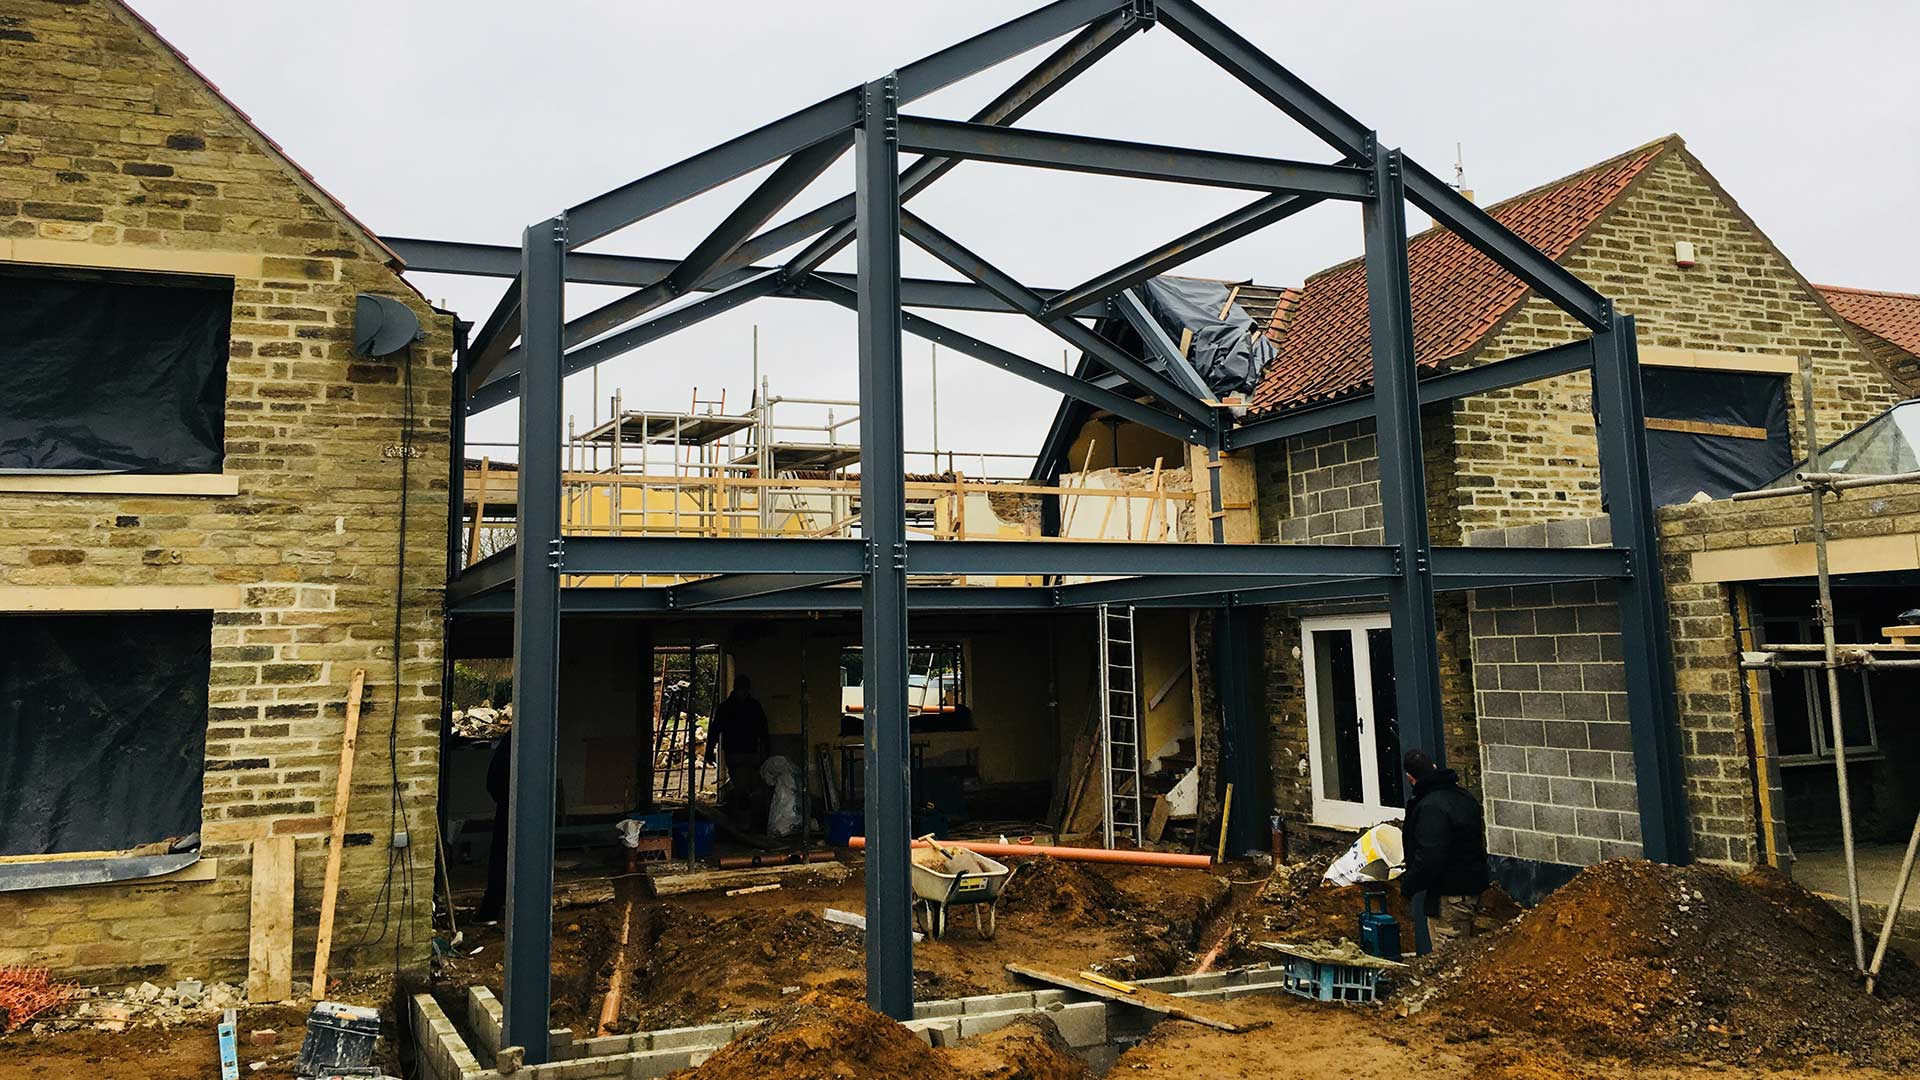 Photo of a steel frame structure attached to a house